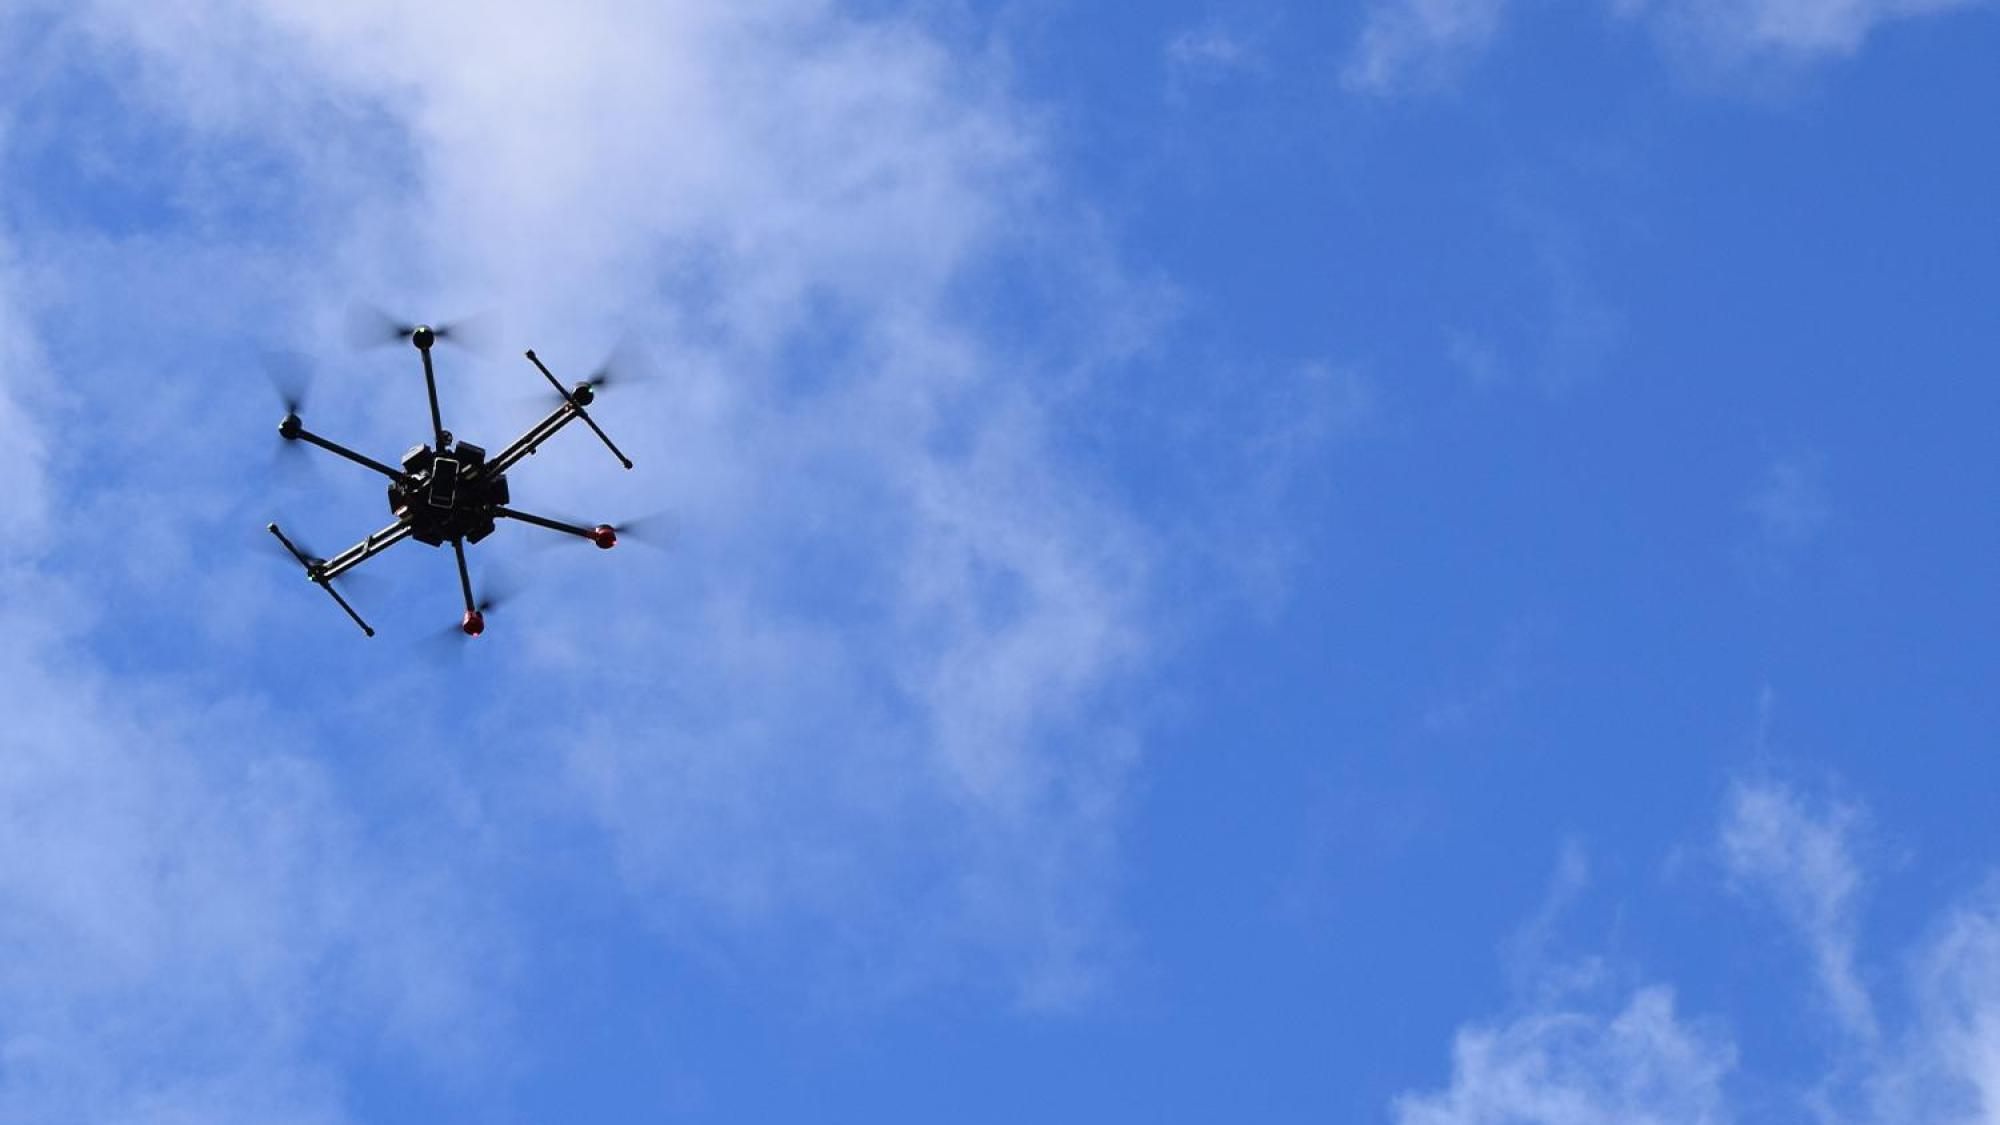 5G drone flying in the sky.